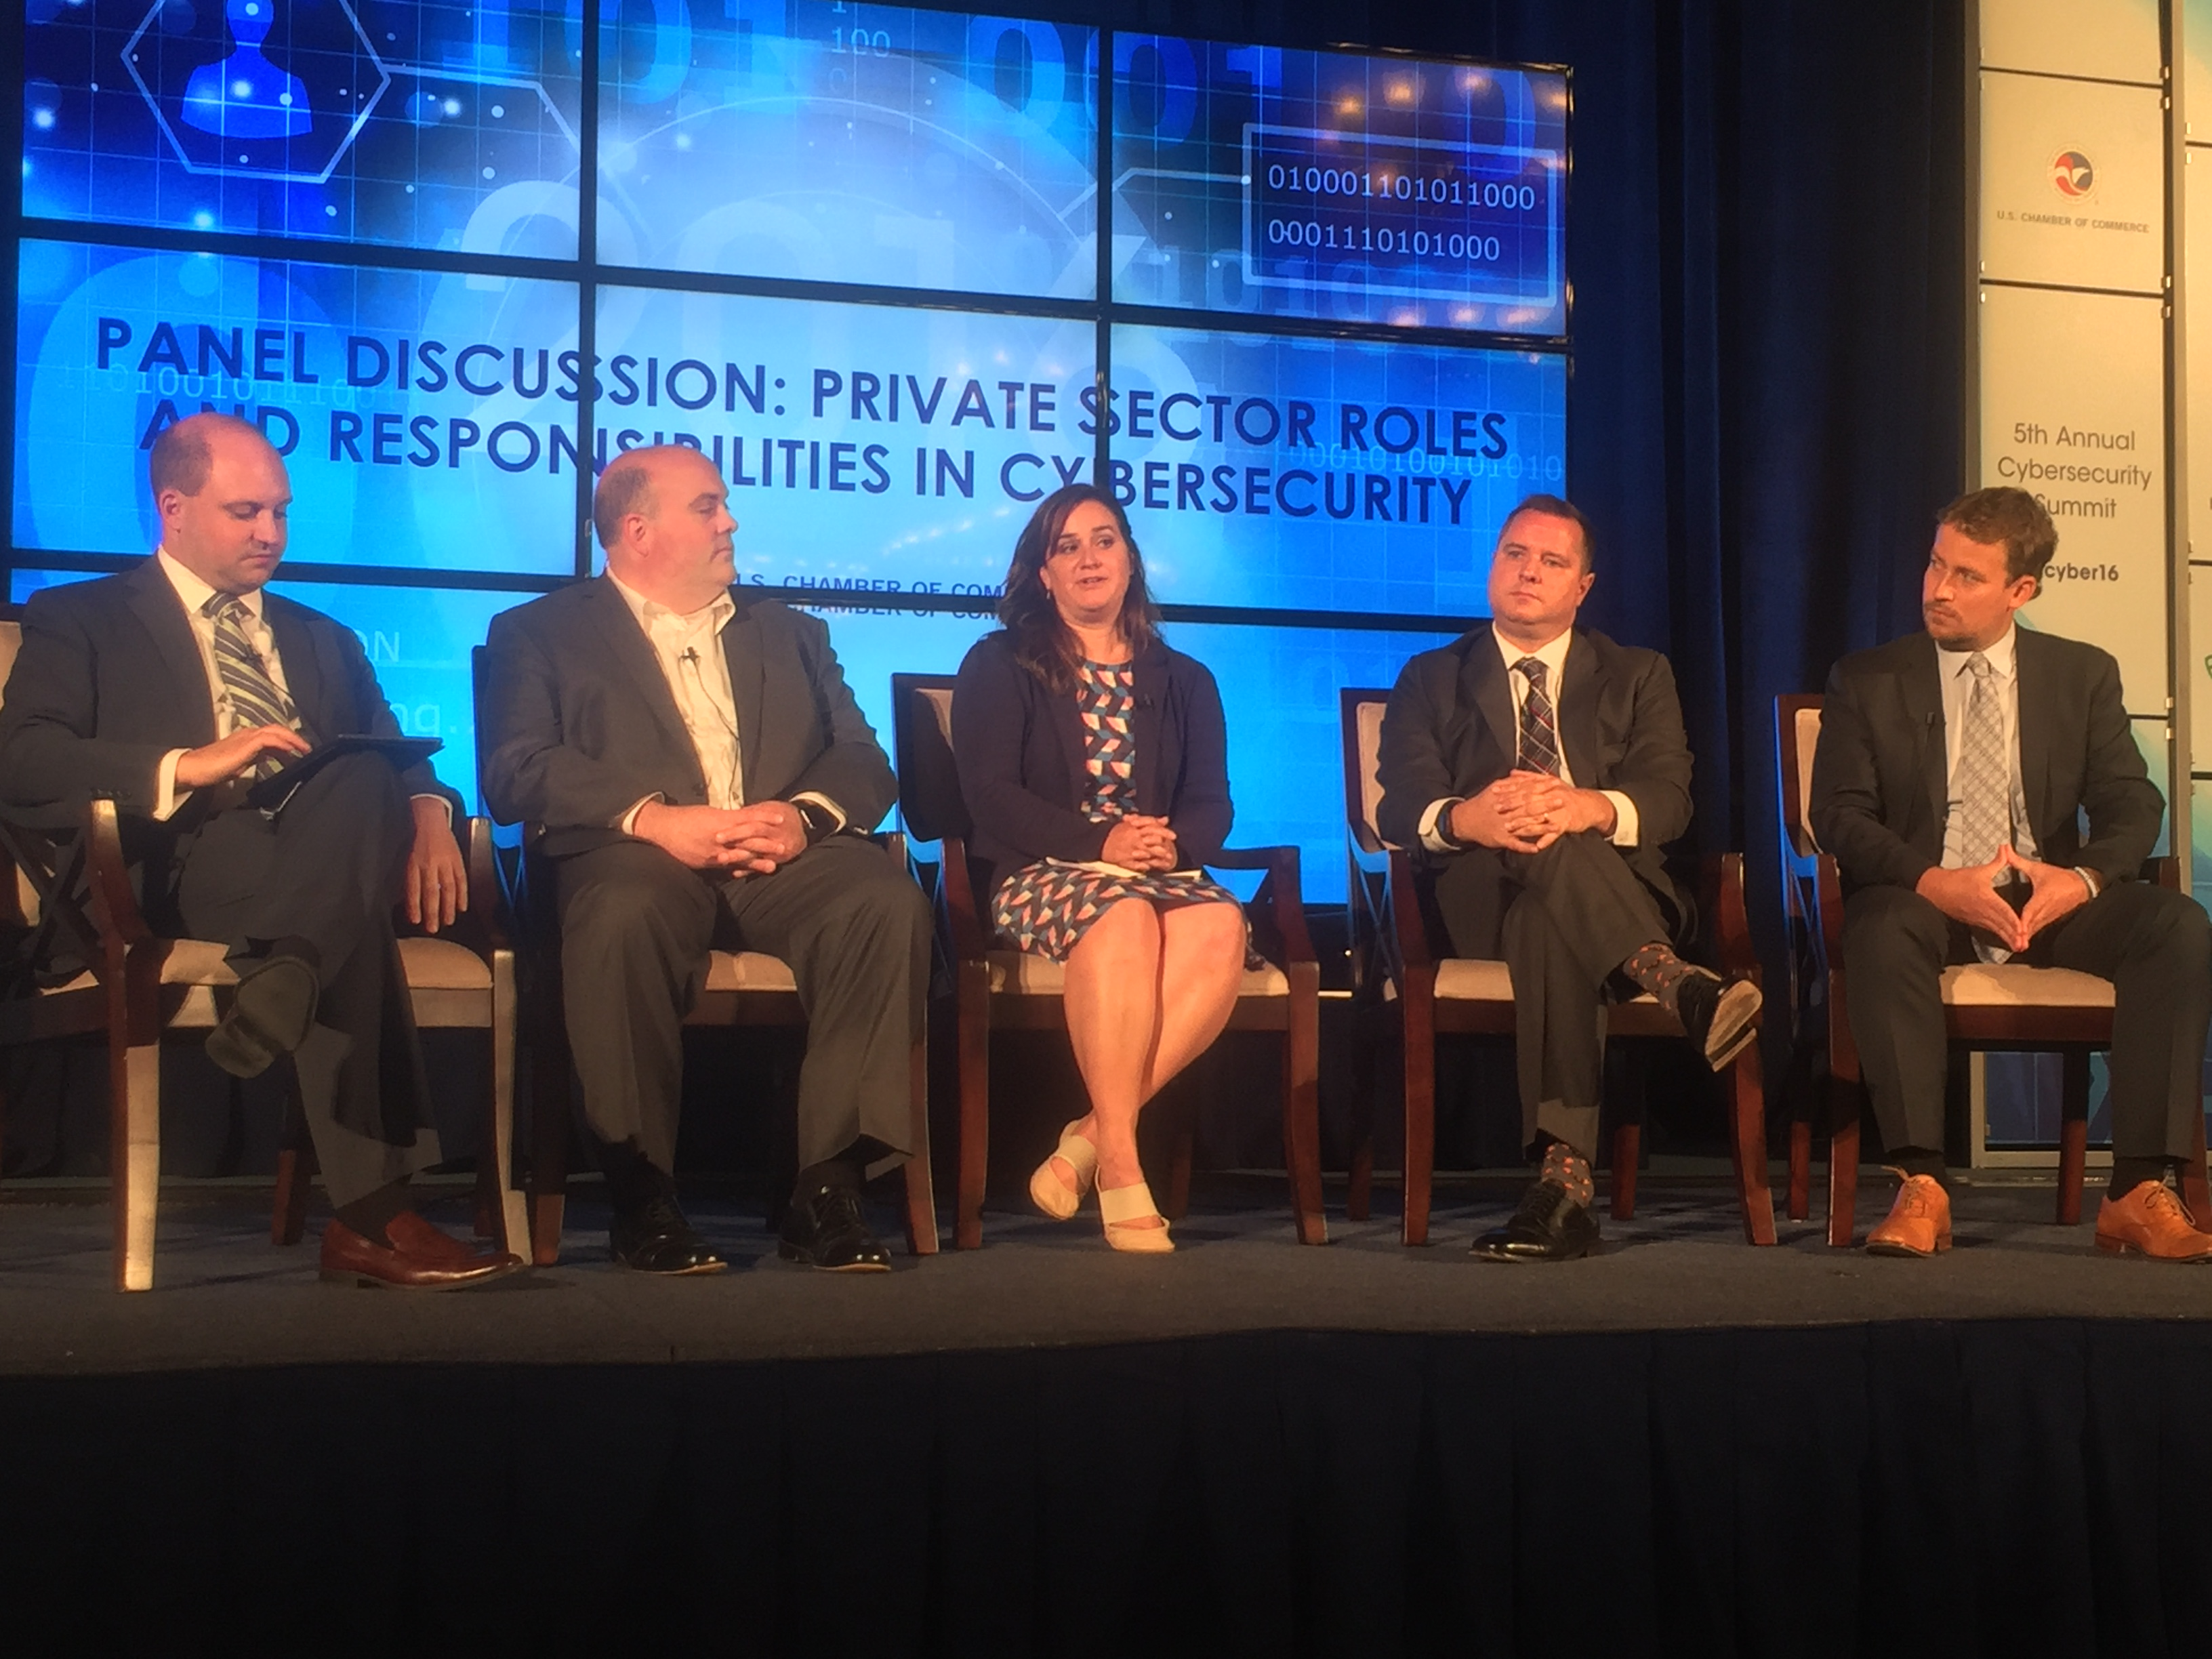 What is the Private Sector's Role in Cybersecurity?